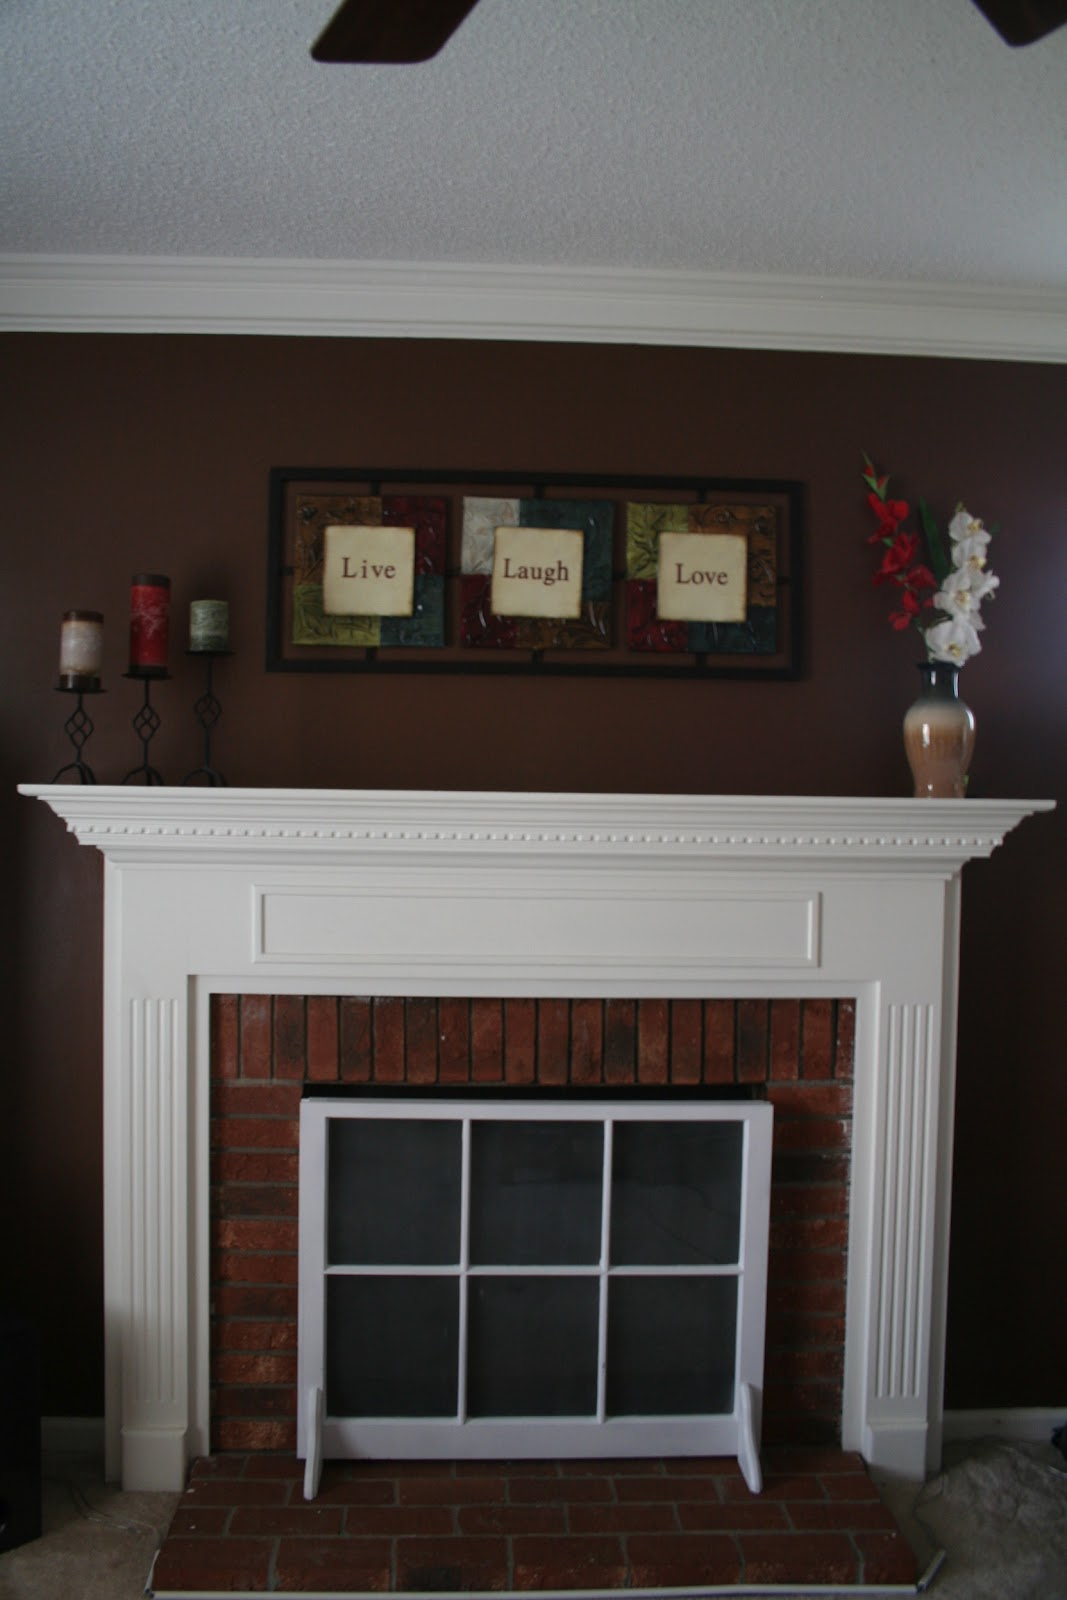 In A Nutshell.: How to cover up your fireplace when not in use